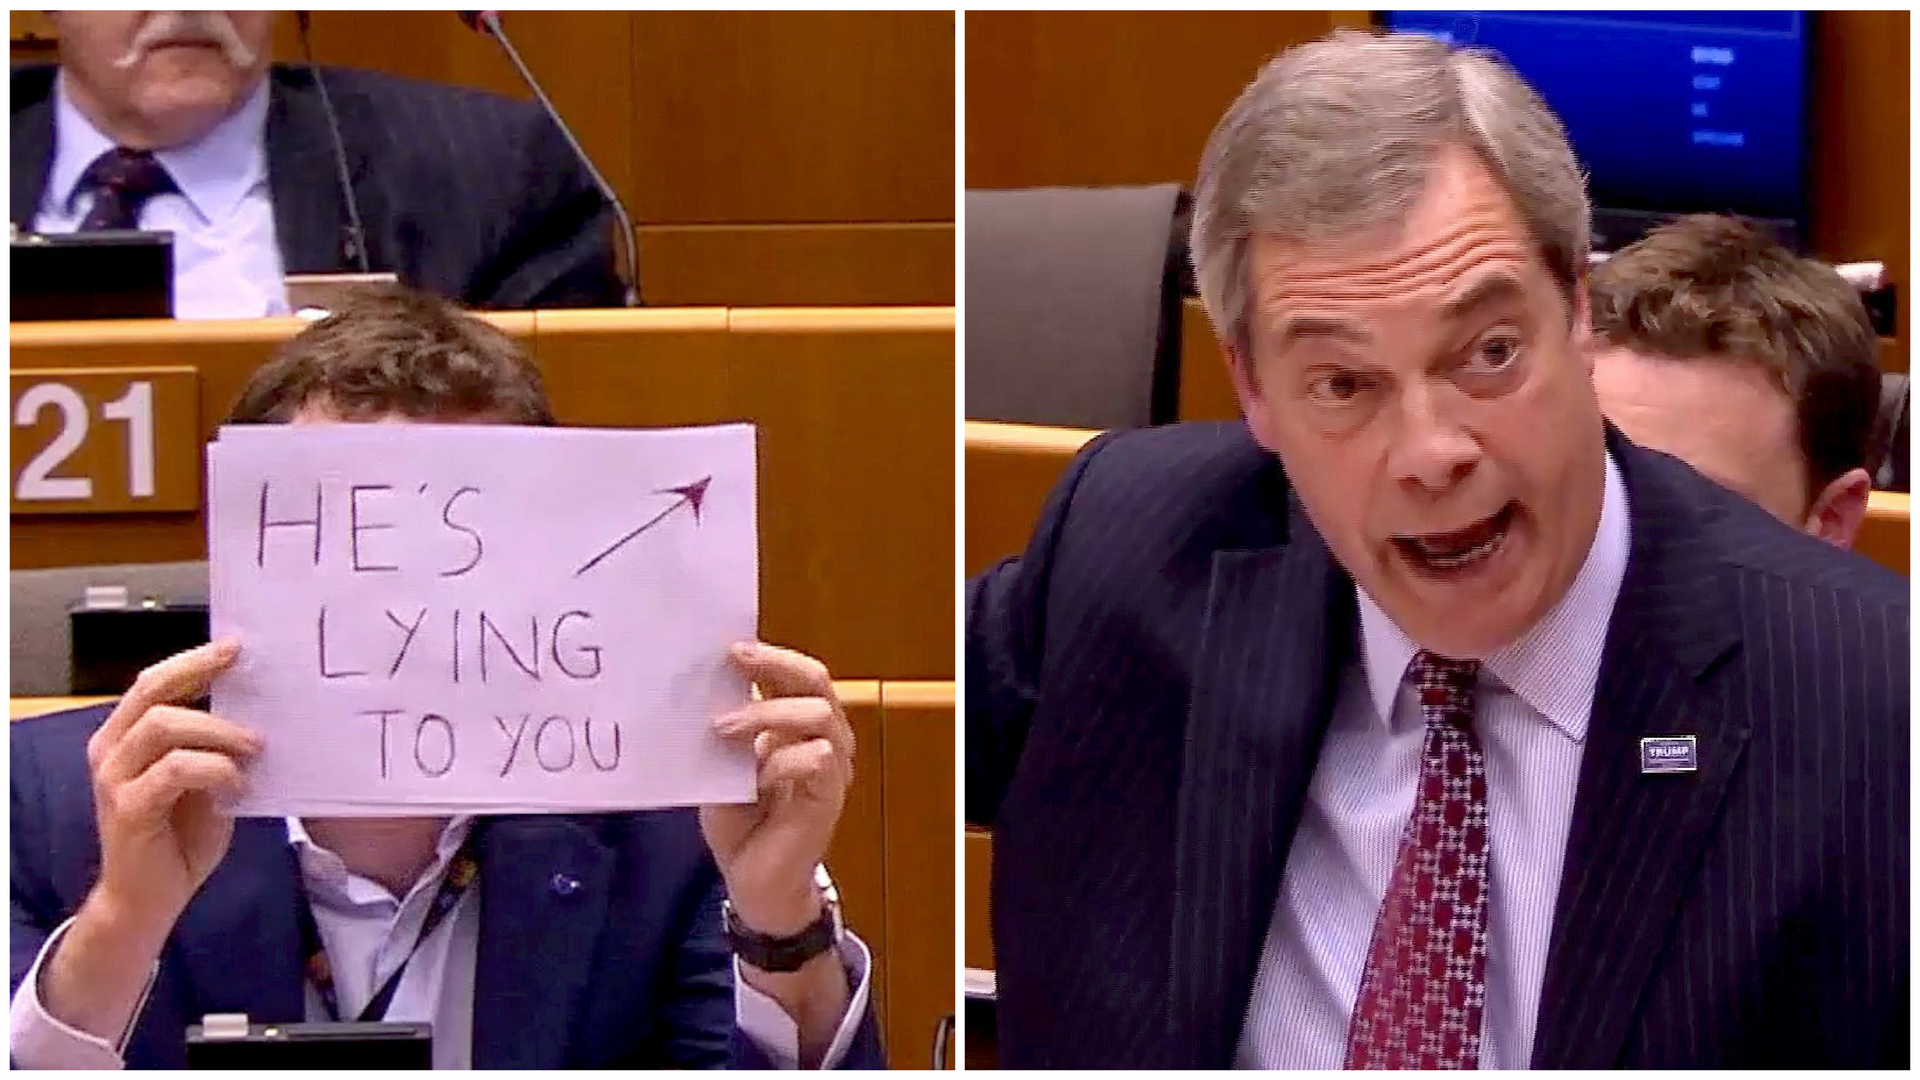 Is Nigel Farage lying to you?